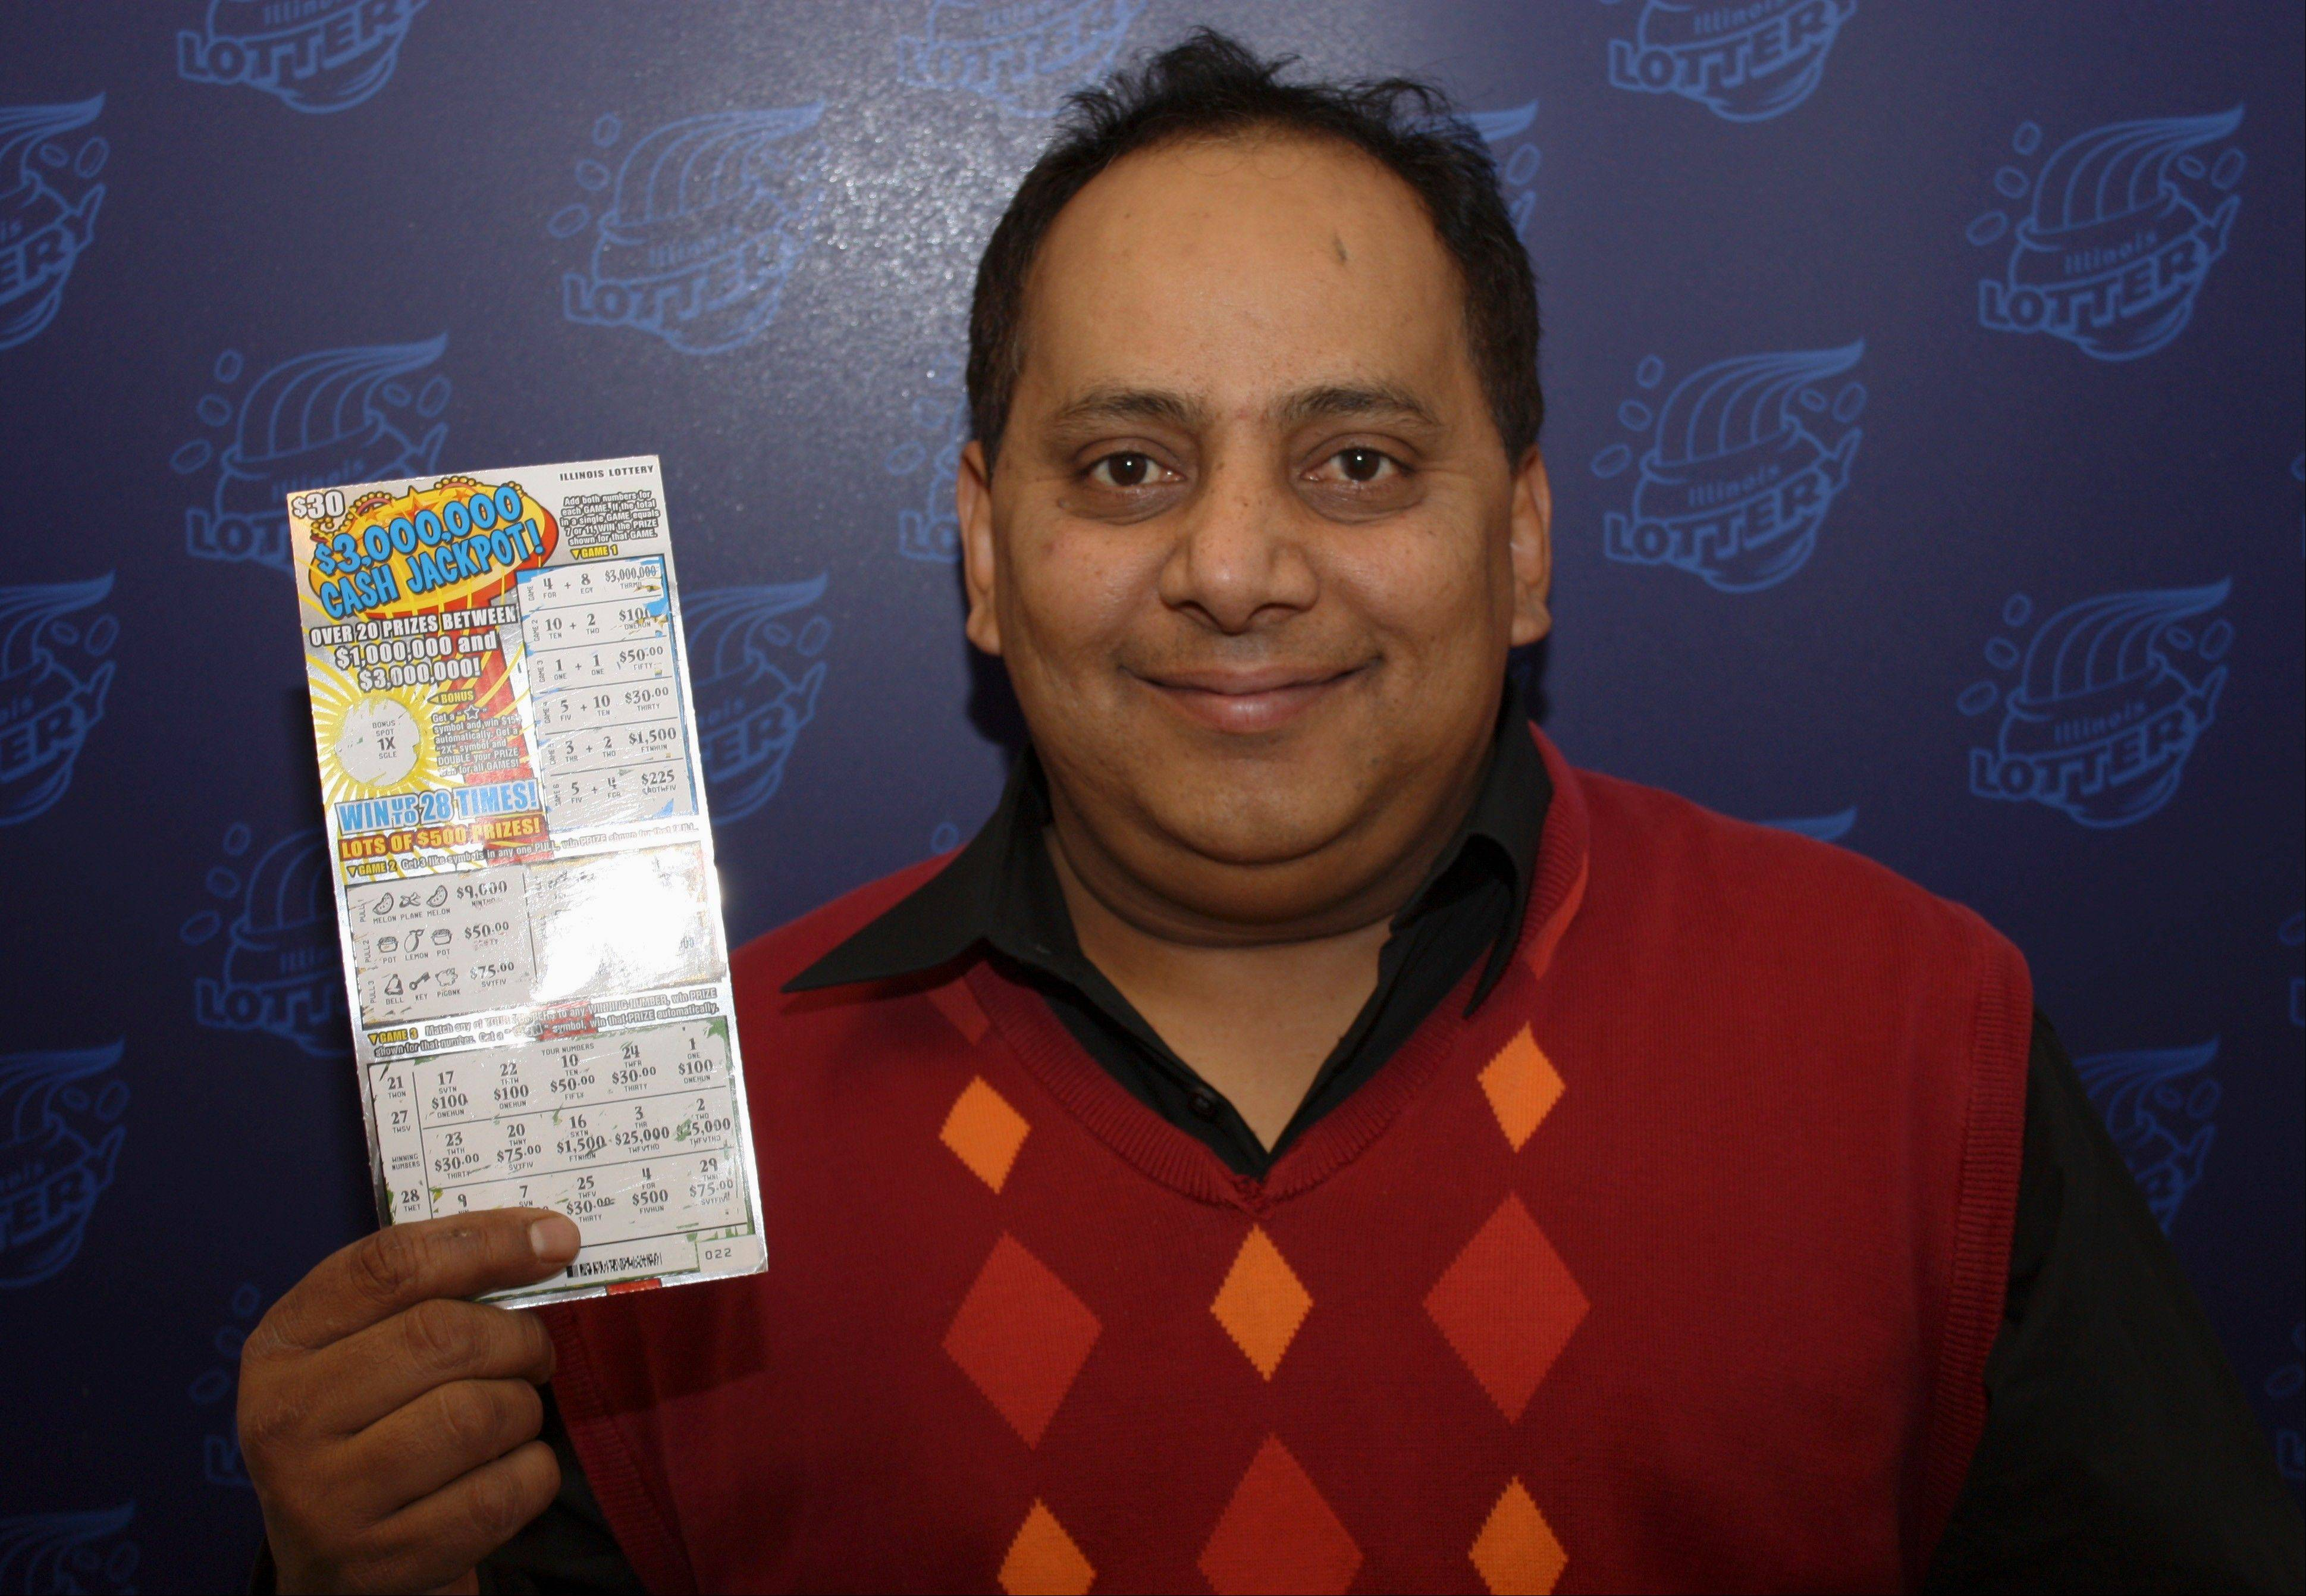 Documents show battle over lottery winner's estate